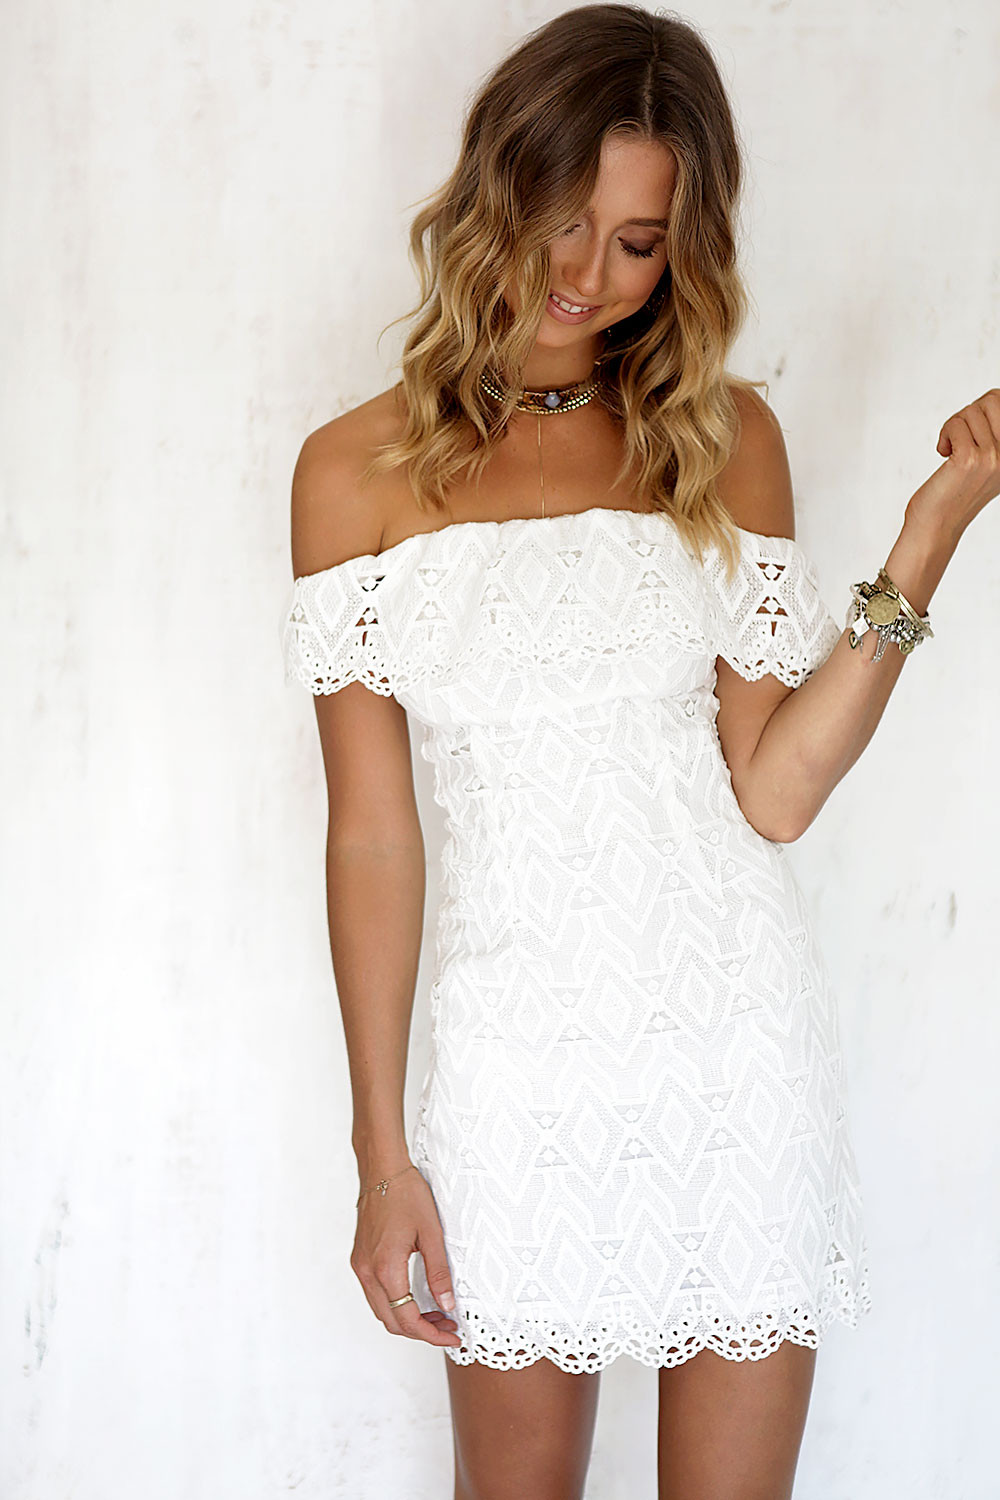 Sexy off the Shoulder White Lace Dress Women Casual vestido de festa feminino Monos Summer Style High Slit Party Boho Dresses 7